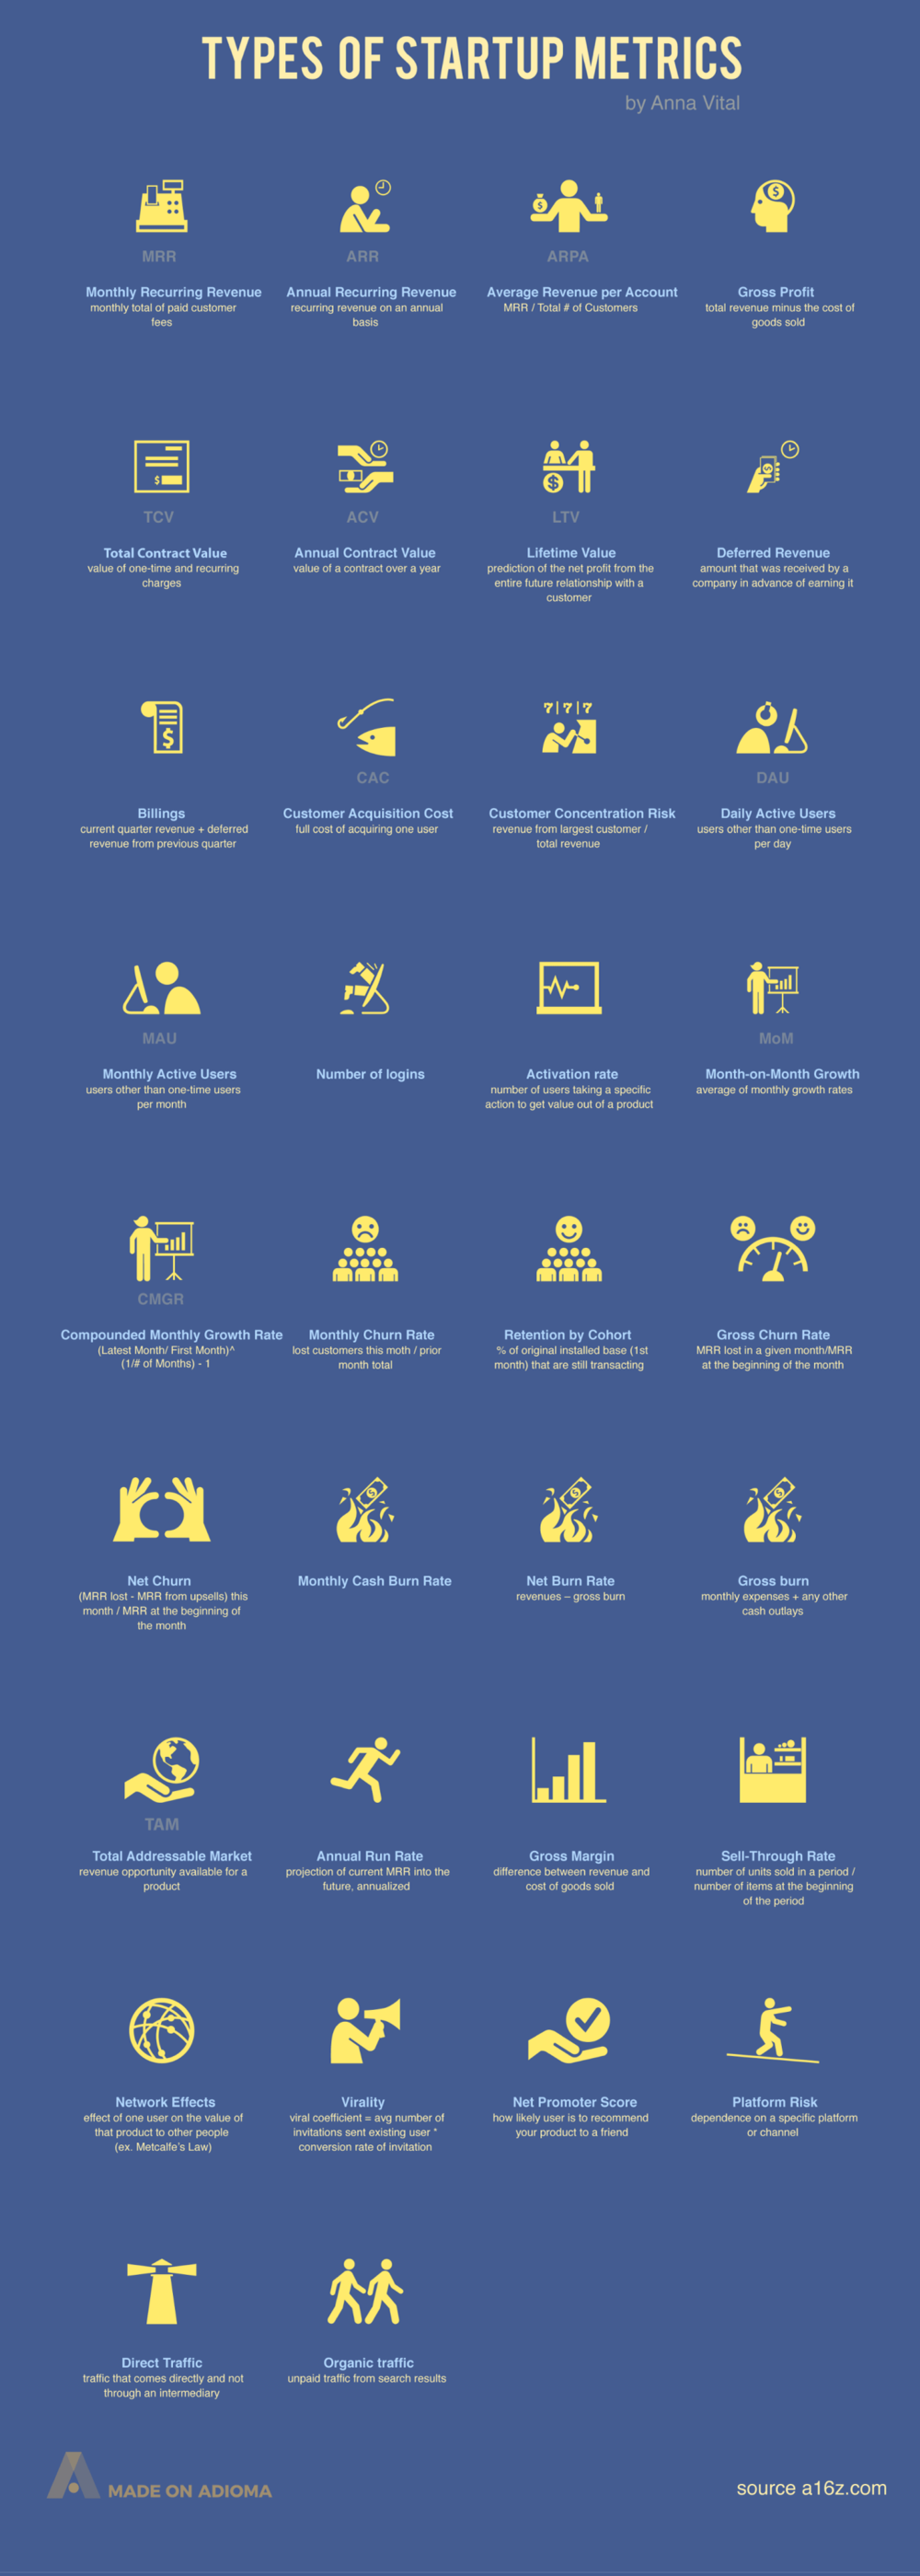 types-of-startup-metrics-infographic.png